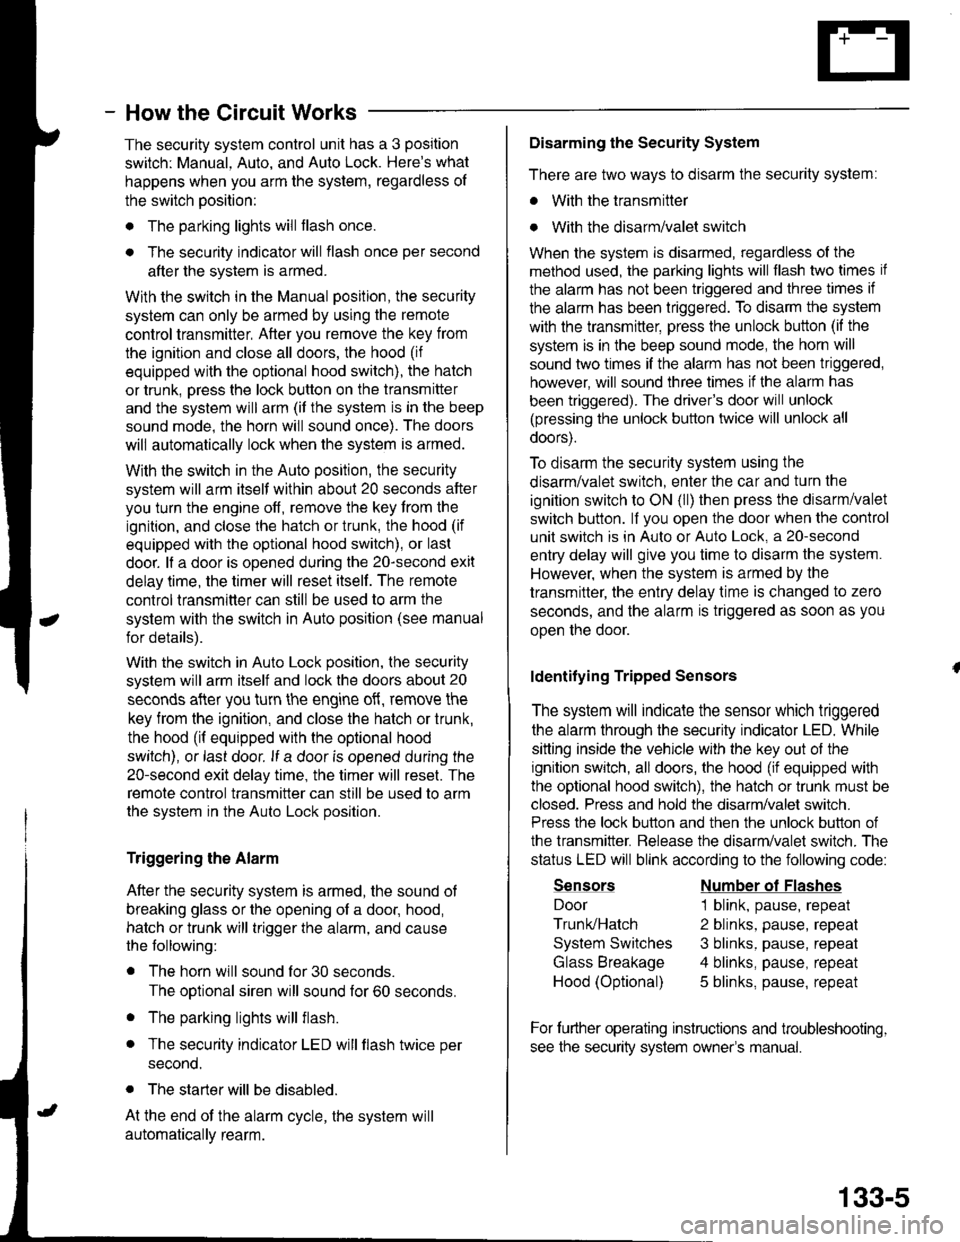 HONDA INTEGRA 1998 4.G Workshop Manual - How the Circuit Works The security system control unit has a 3 position switch: Manual. Auto. and Auto Lock. Heres what happens when you arm the system, regardless ol the switch position: o The par